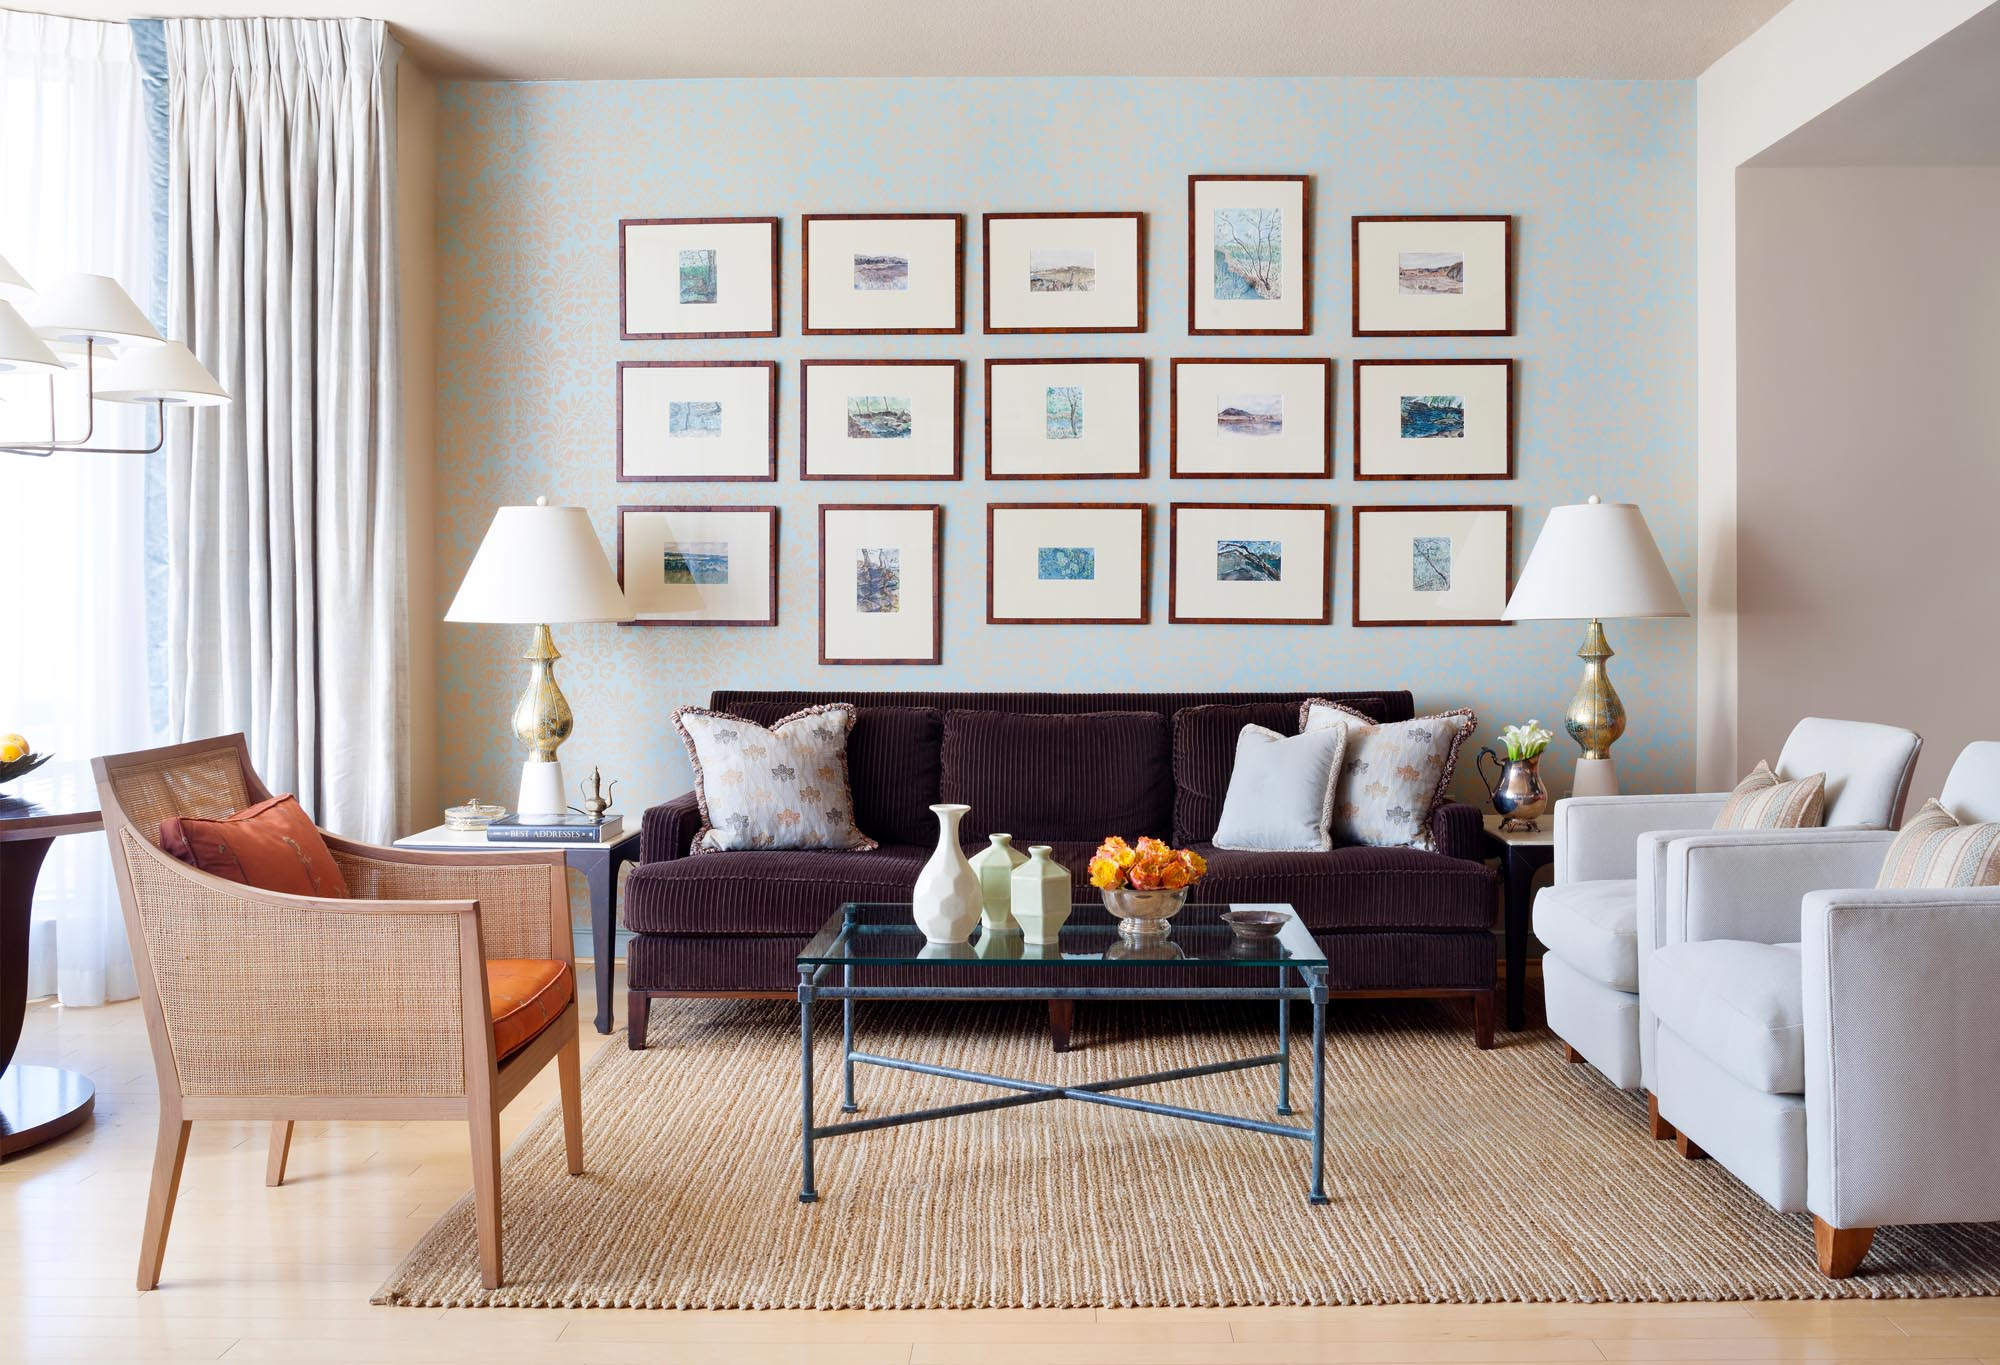 Boston living room interior design by Dane Austin Design